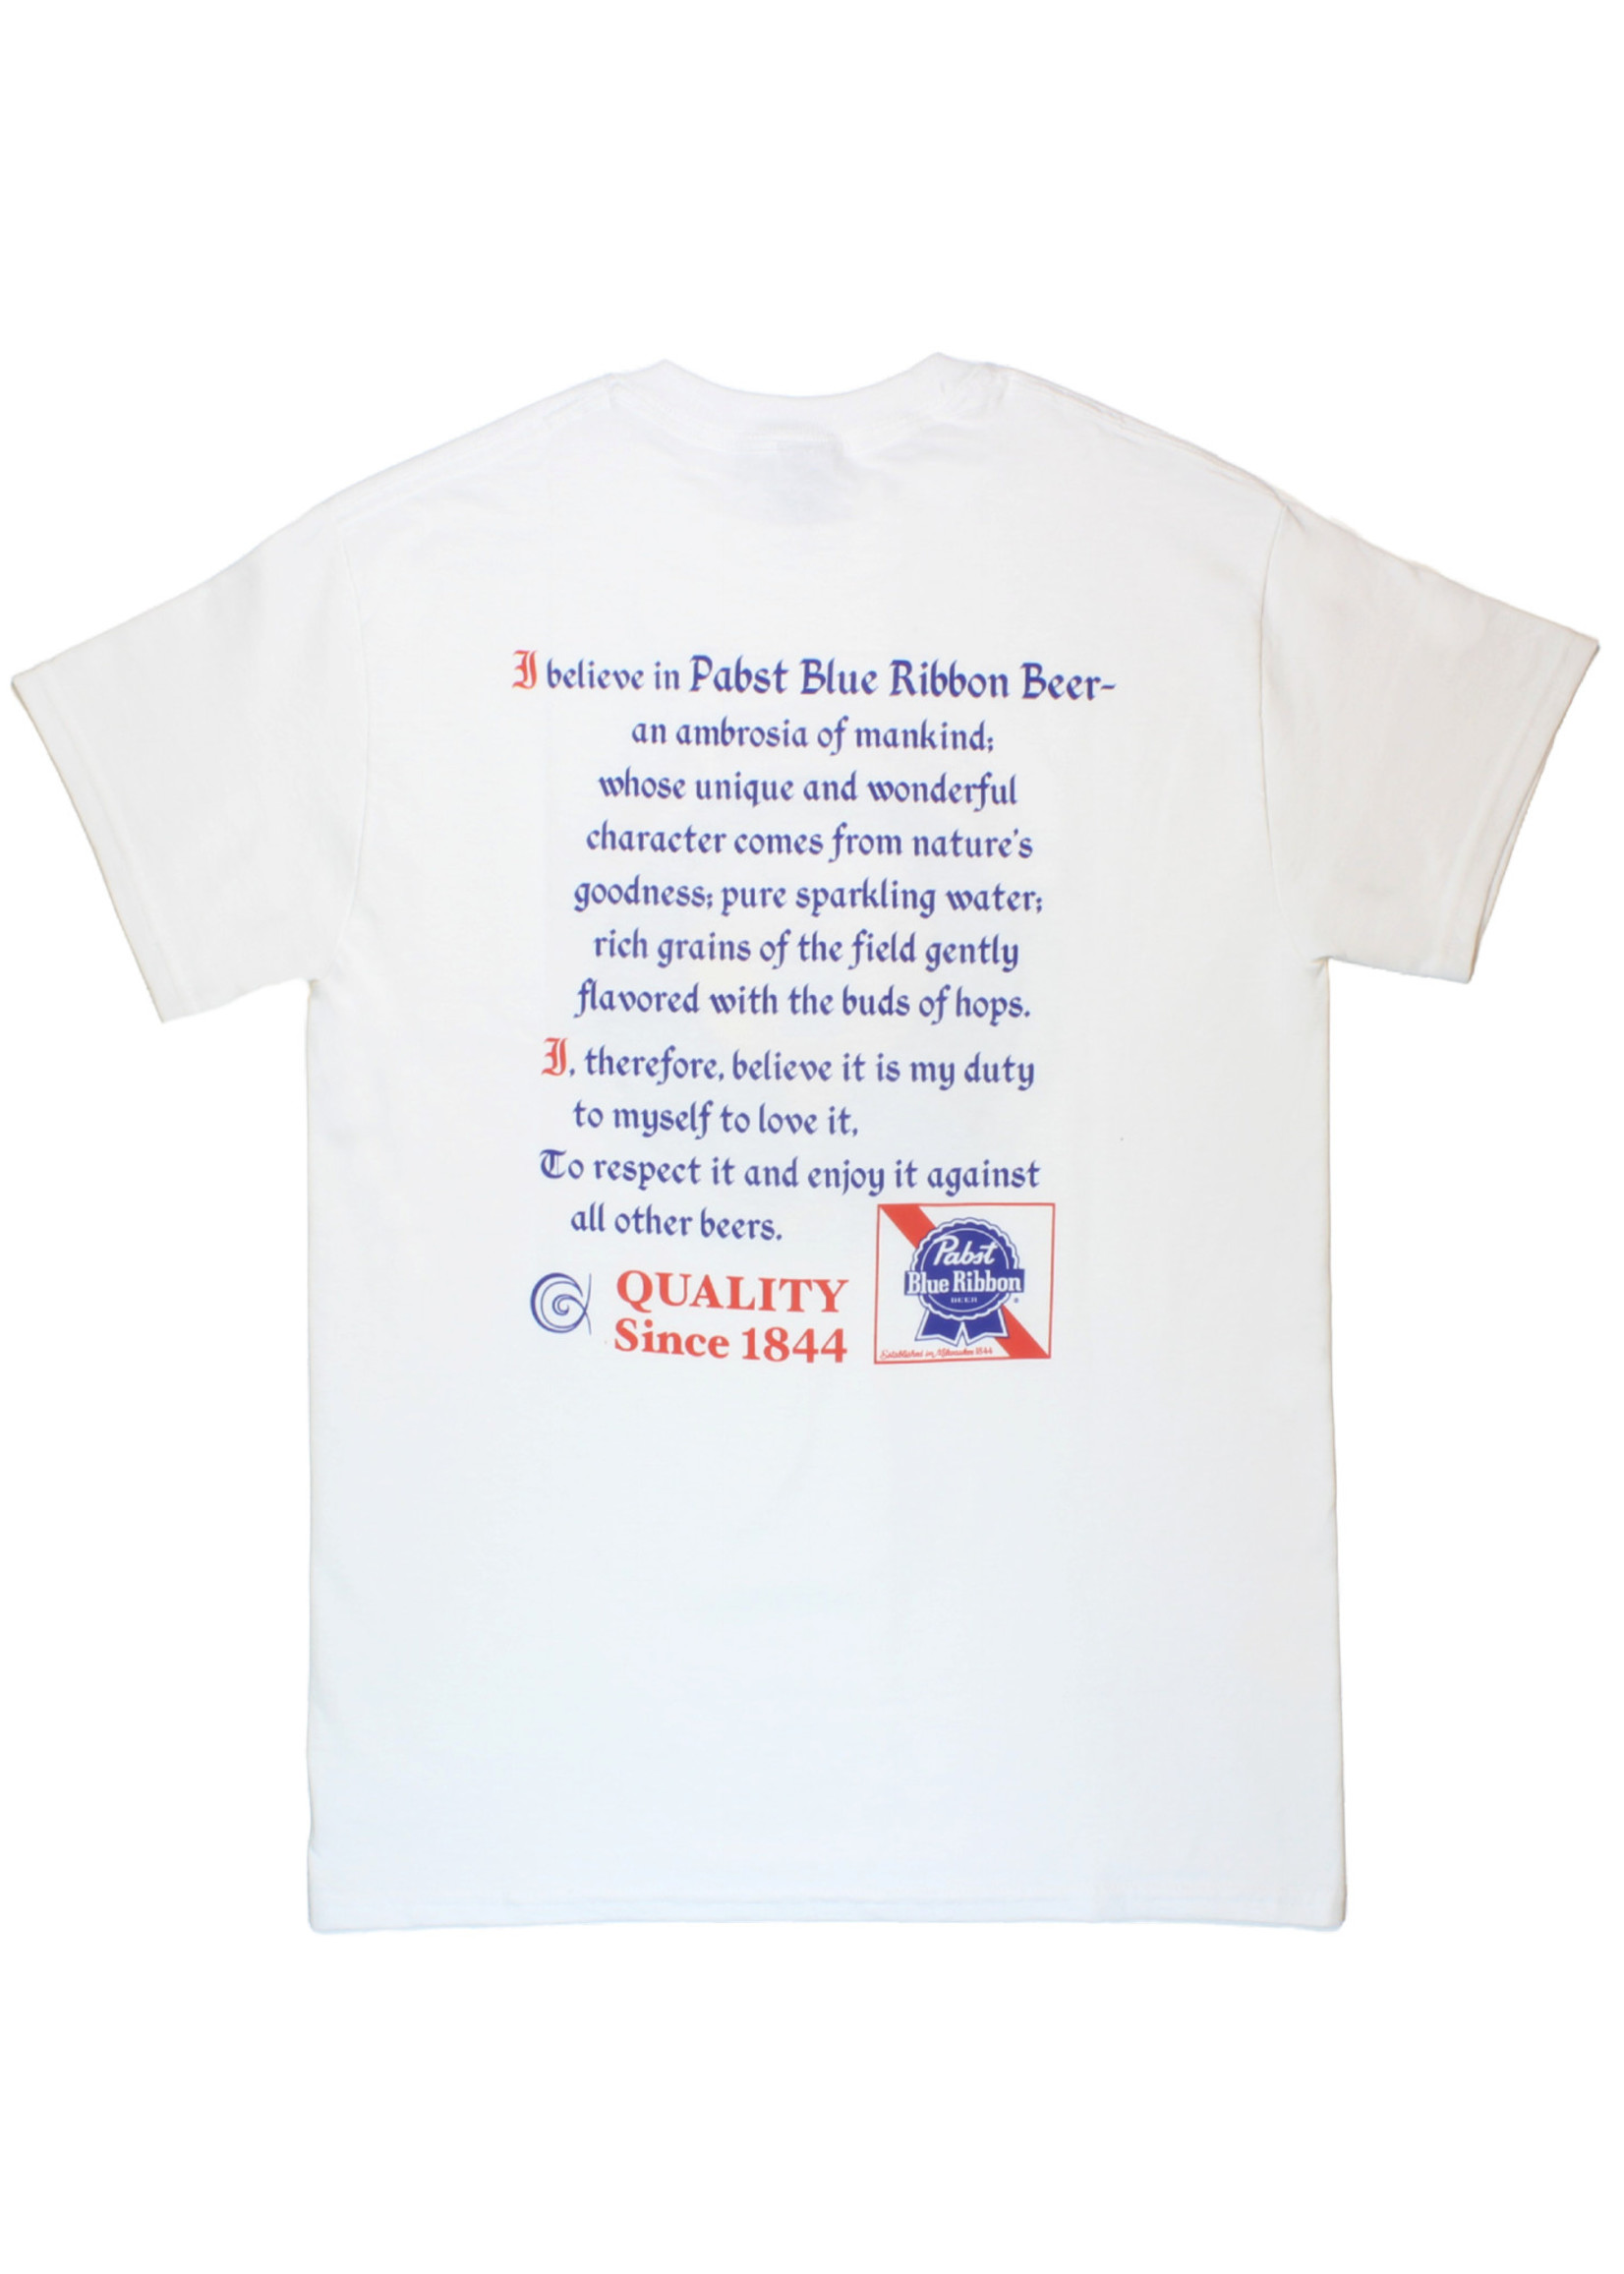 Pabst Pabst Beer Man's Creed Tee